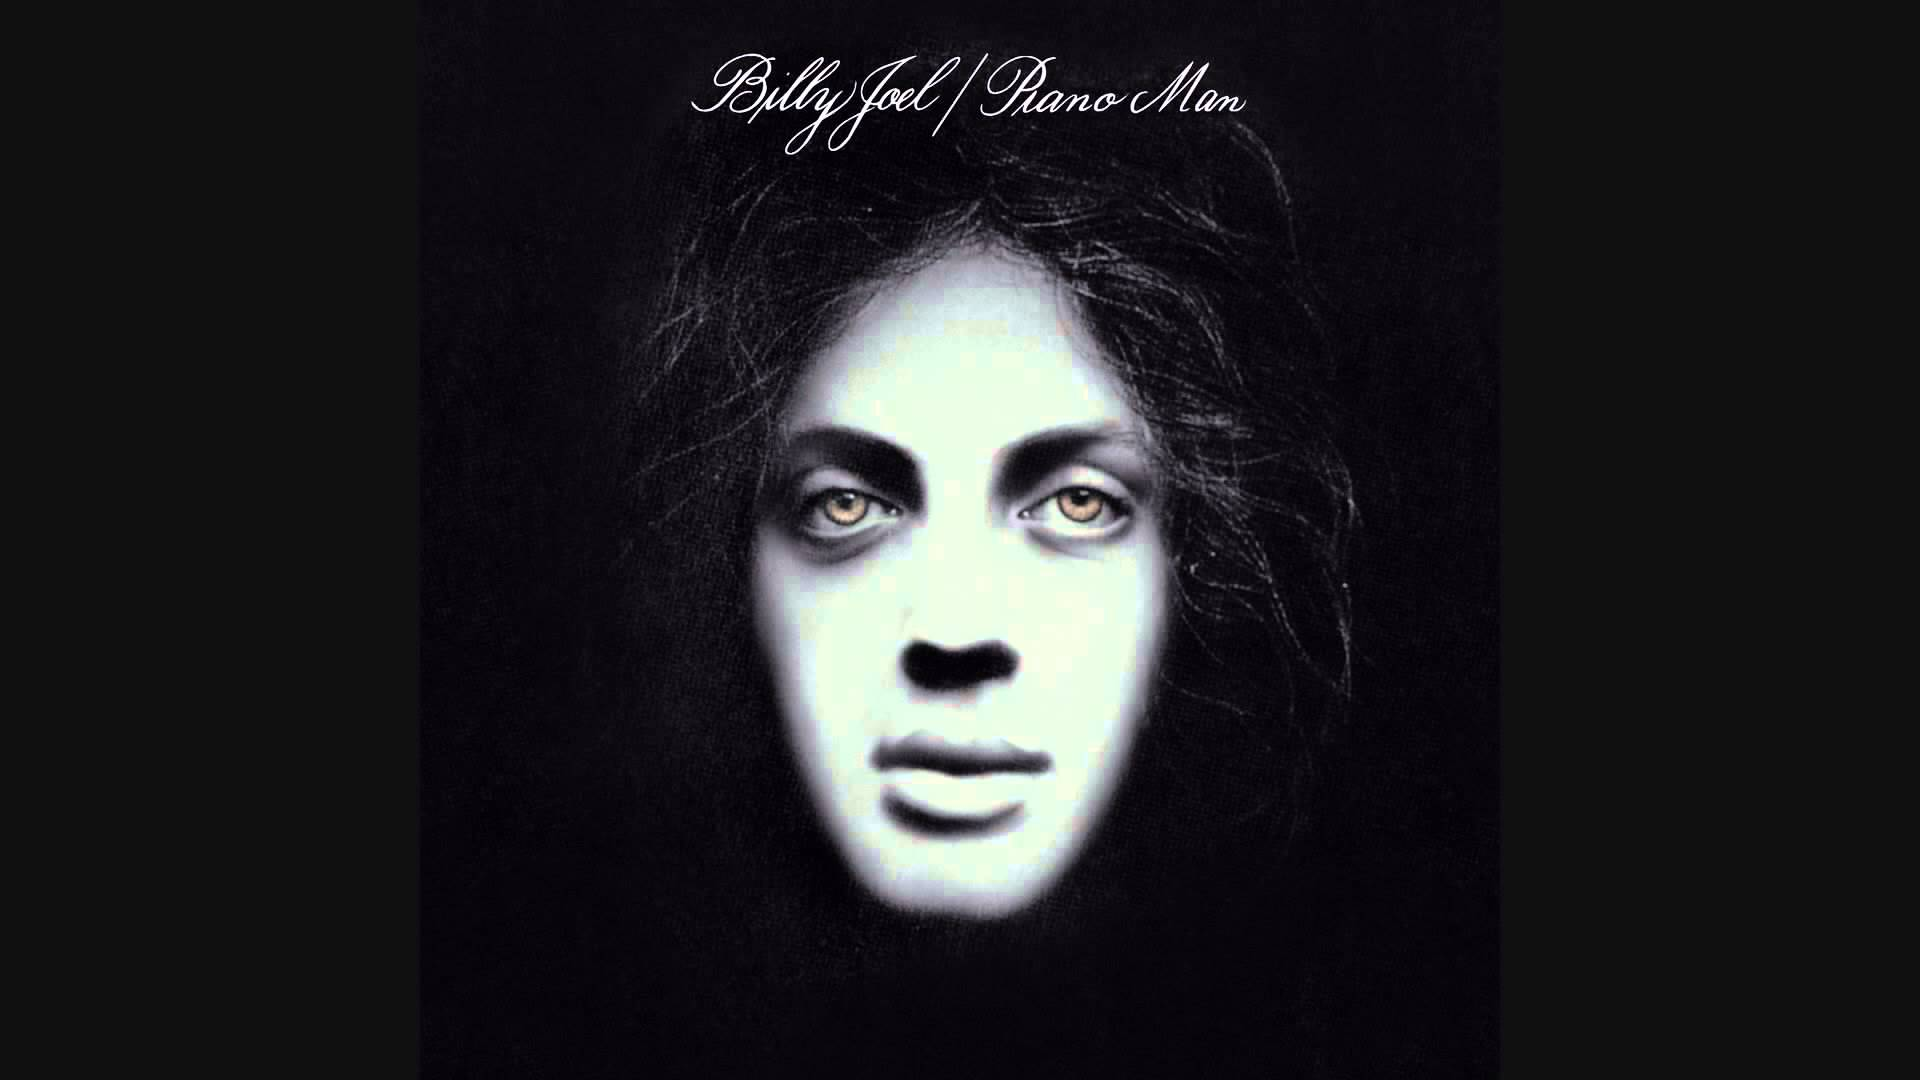 Billy Joel - Piano Man (Audio)